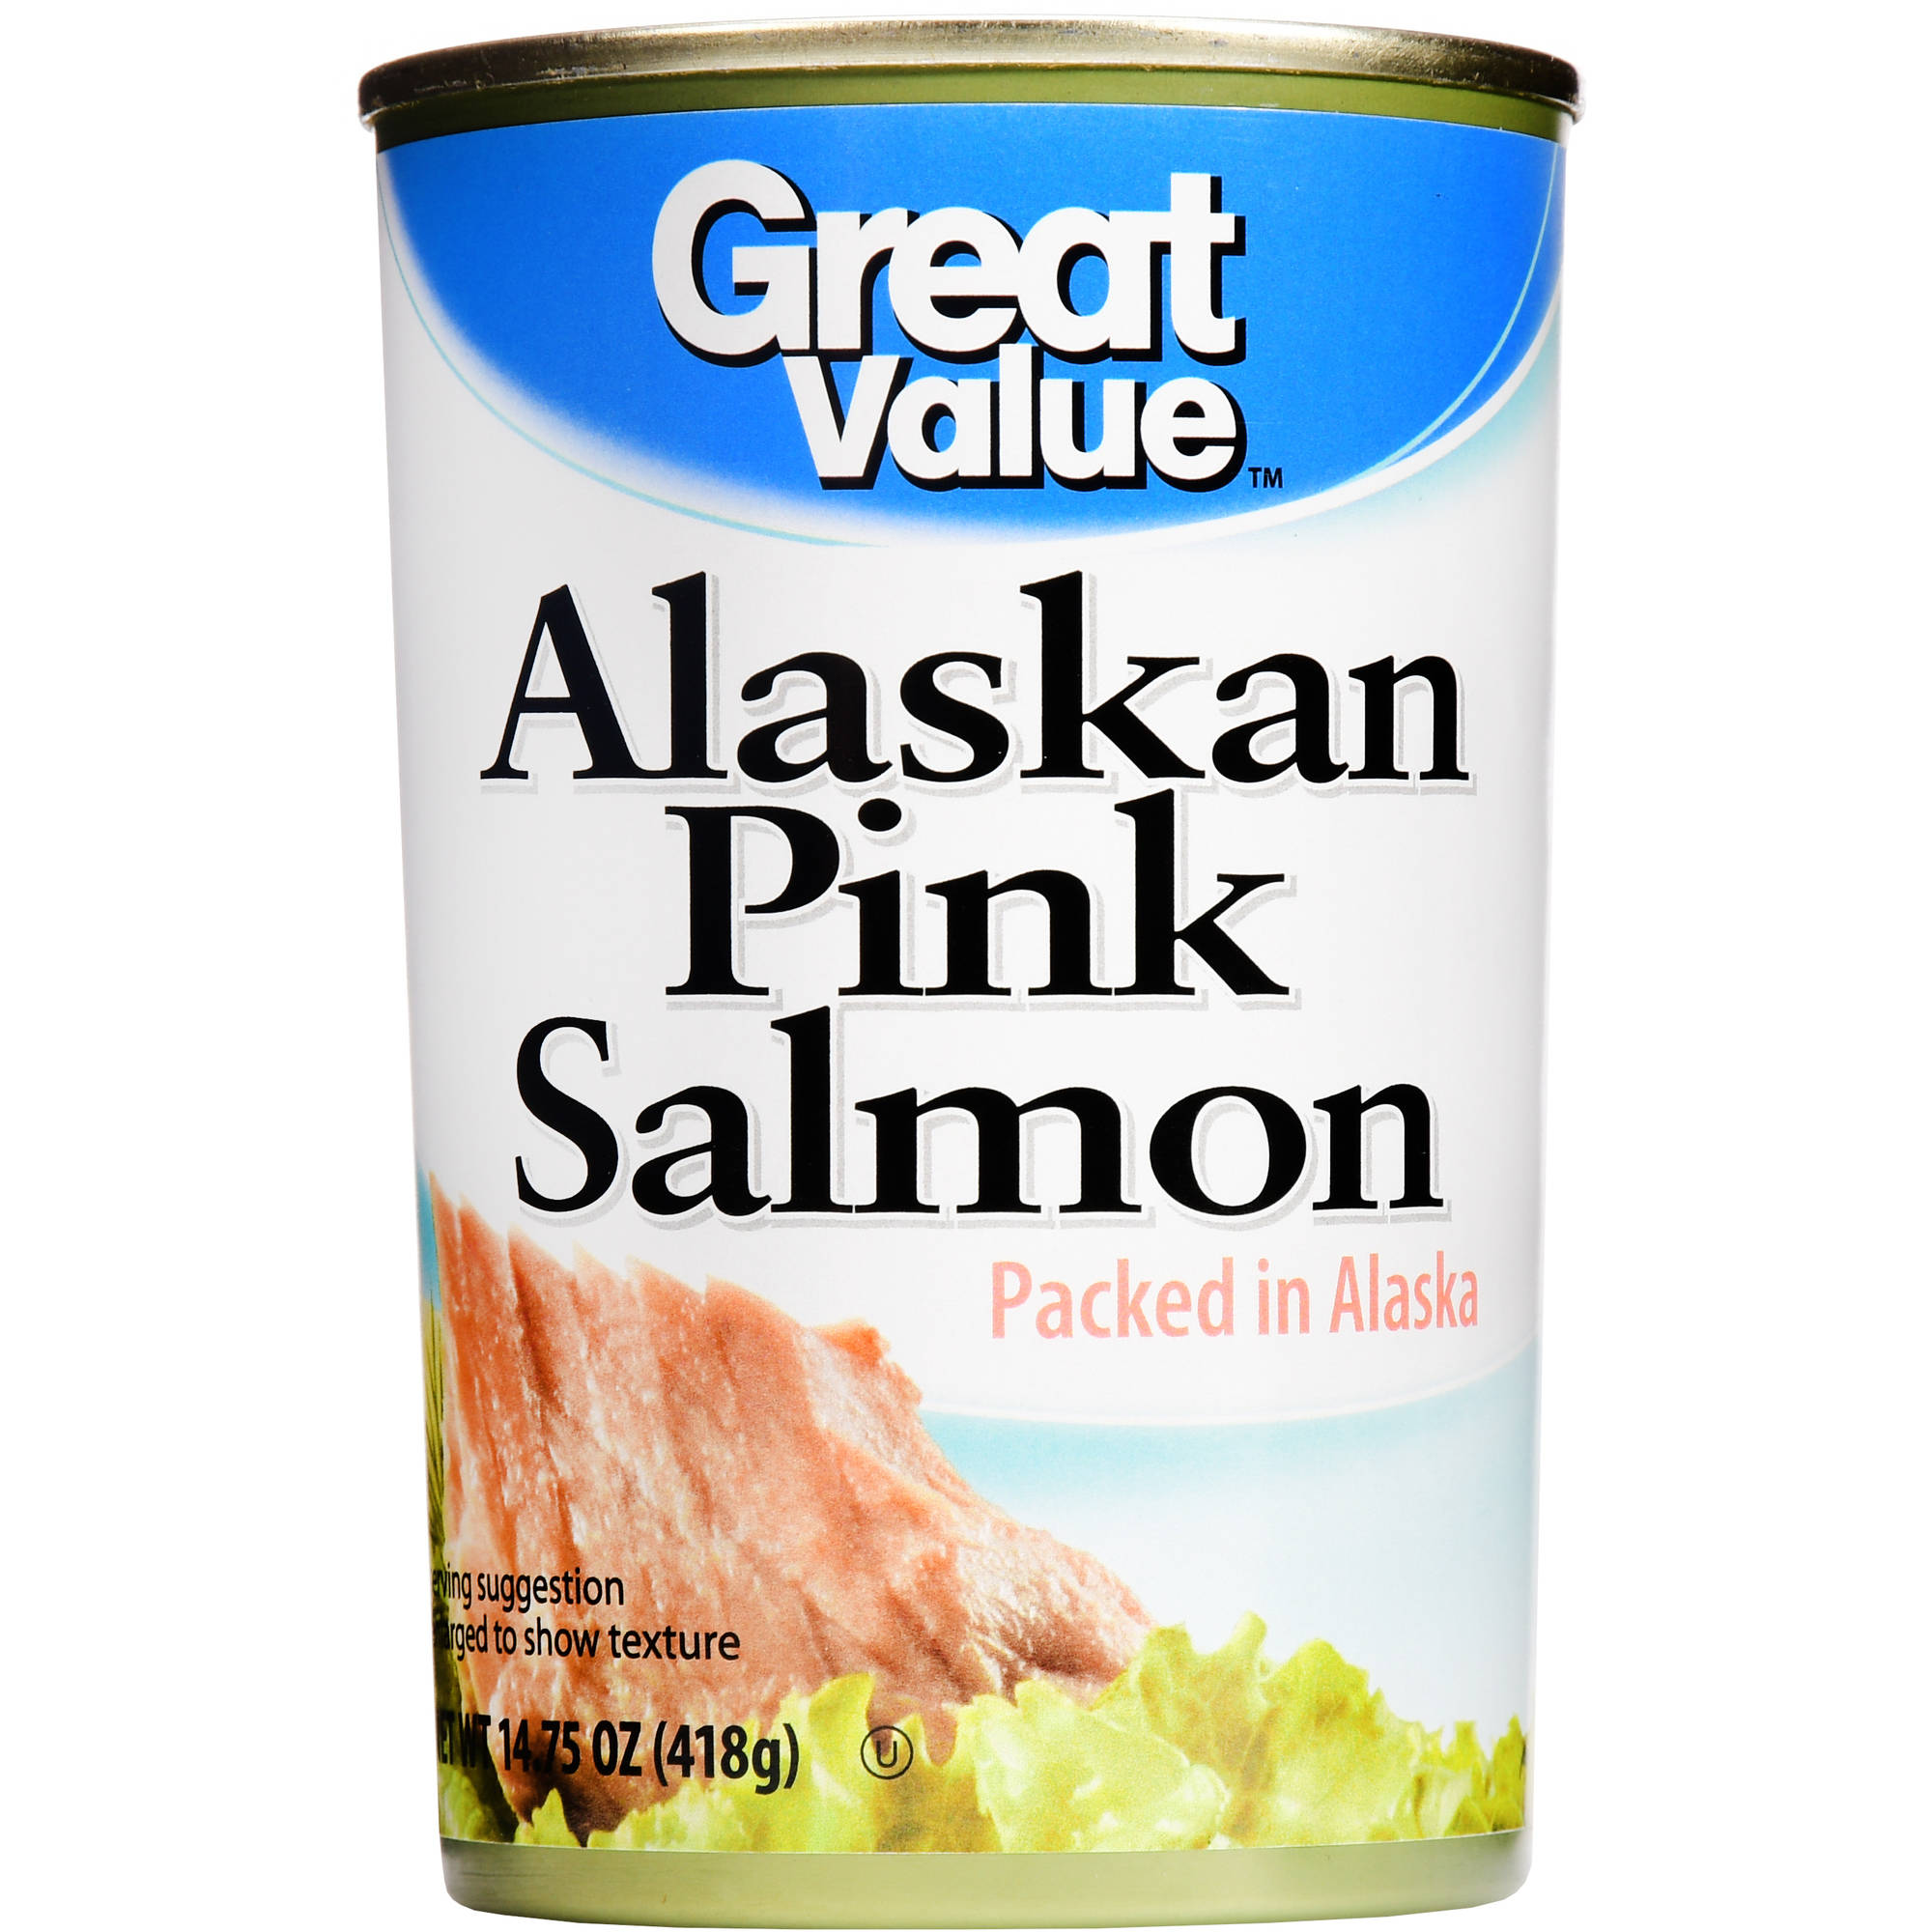 Great Value: Alaskan Pink Salmon, 14.75 Oz